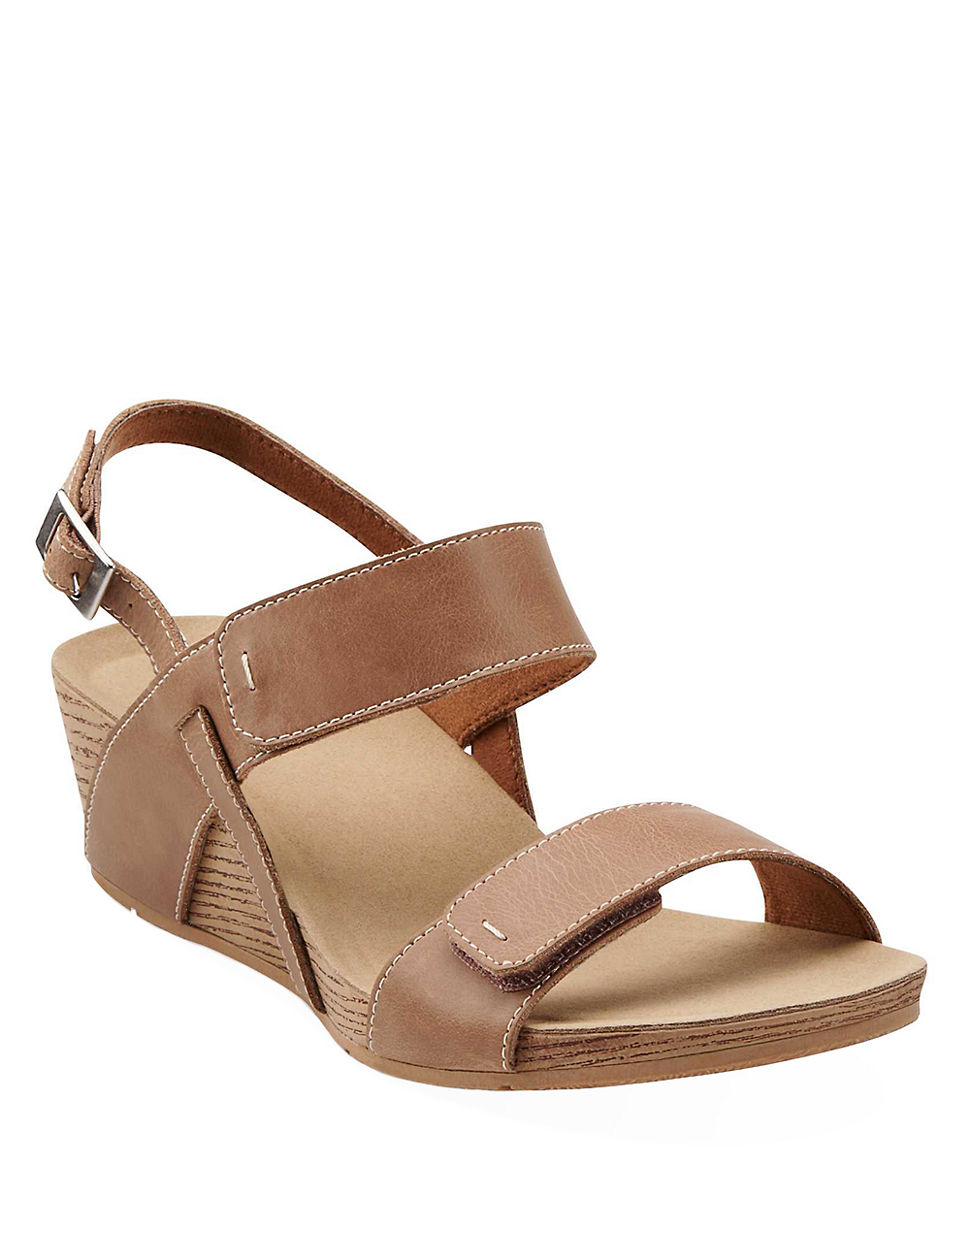 5b24c32882aa Clarks Alto Disco Wedge Sandals in Natural - Lyst